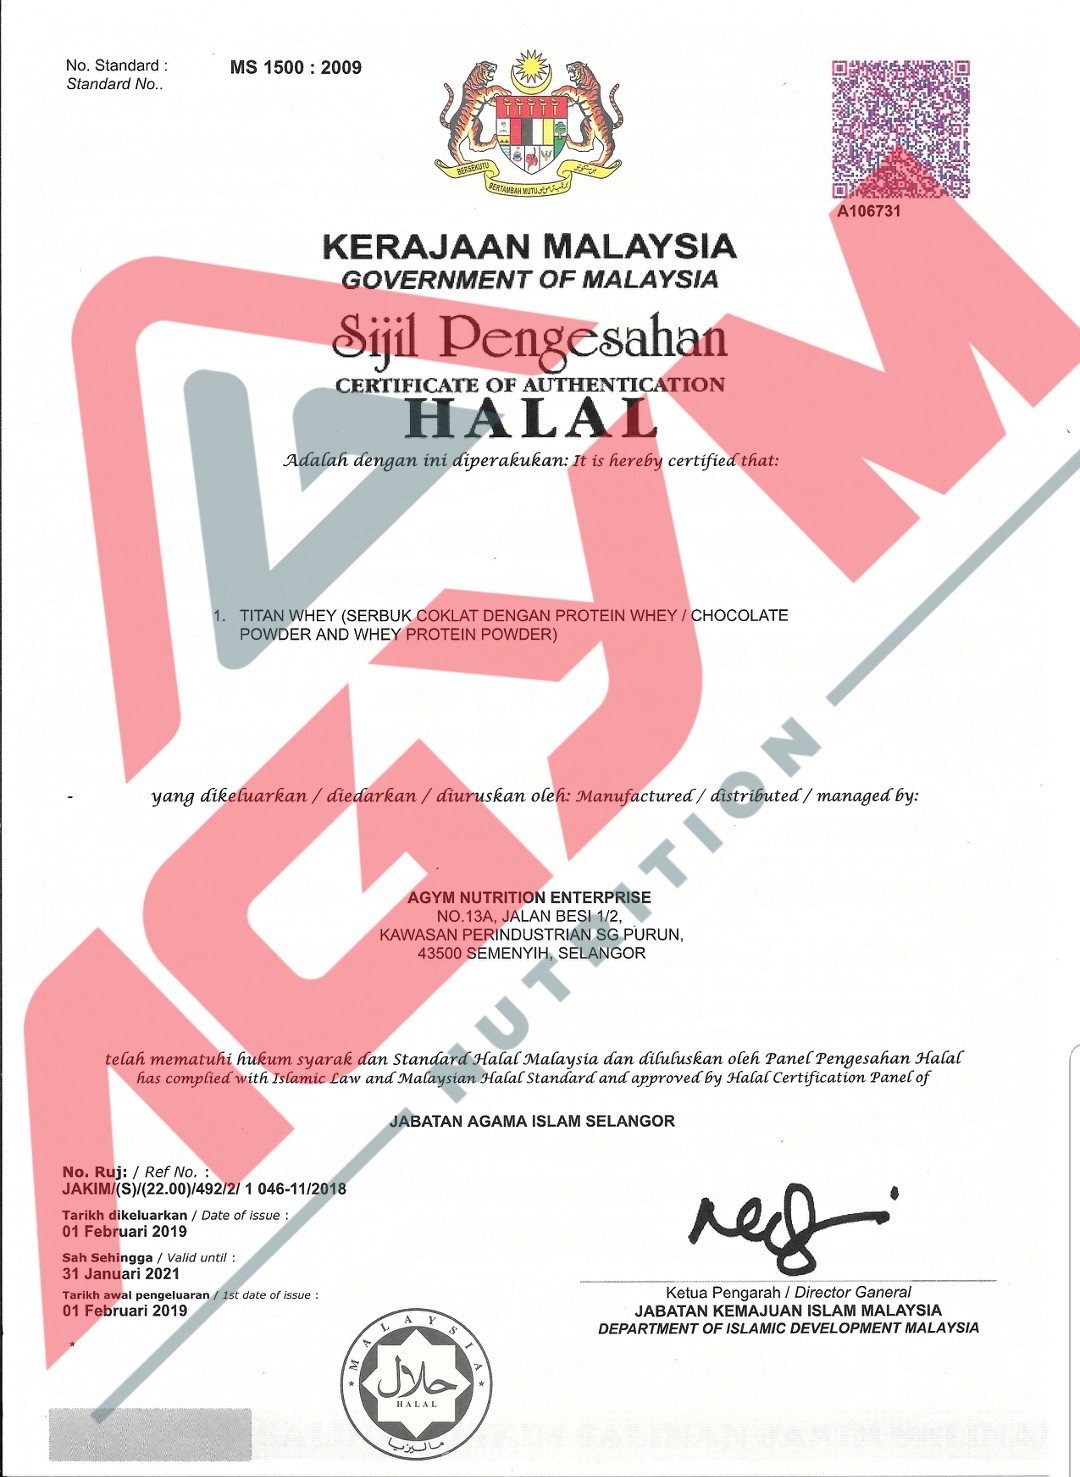 Halal Certifictate for Titan Whey